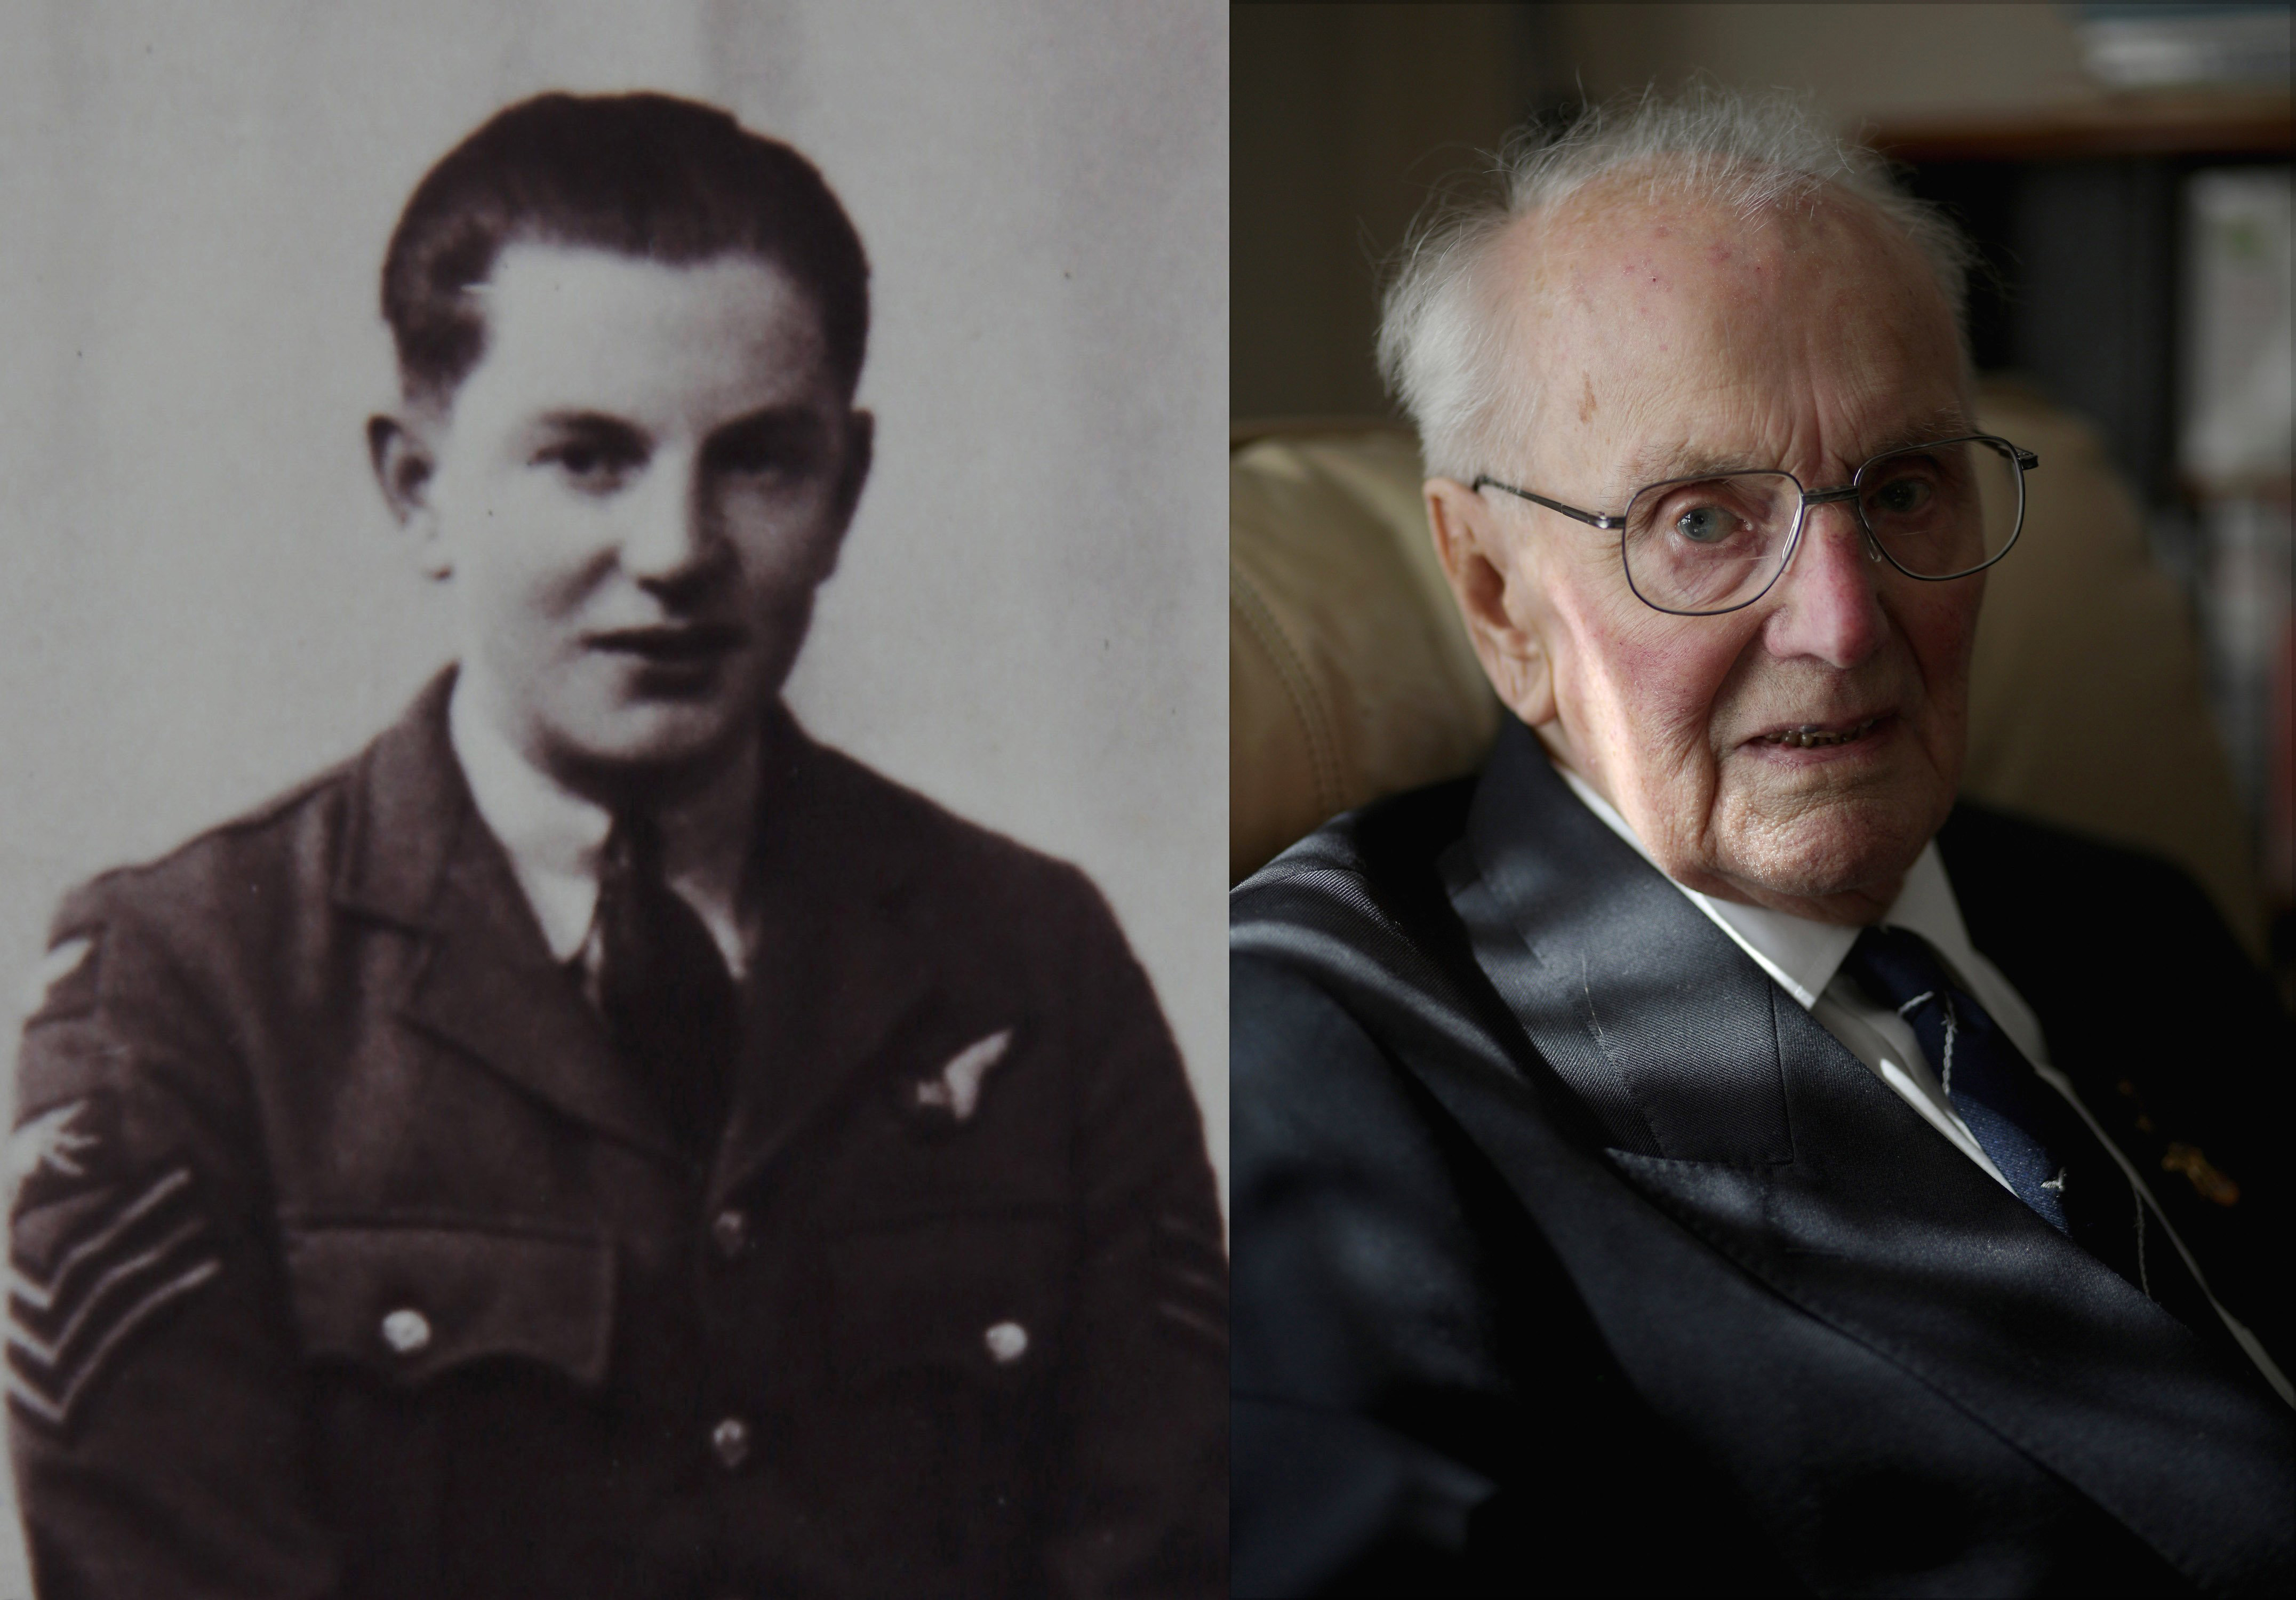 WWII bomber crewman Peter Andrews, aged 21, posing in 1944 and at his home in Kent age 90, on Aug. 7, 2015, in Tonbridge, England.